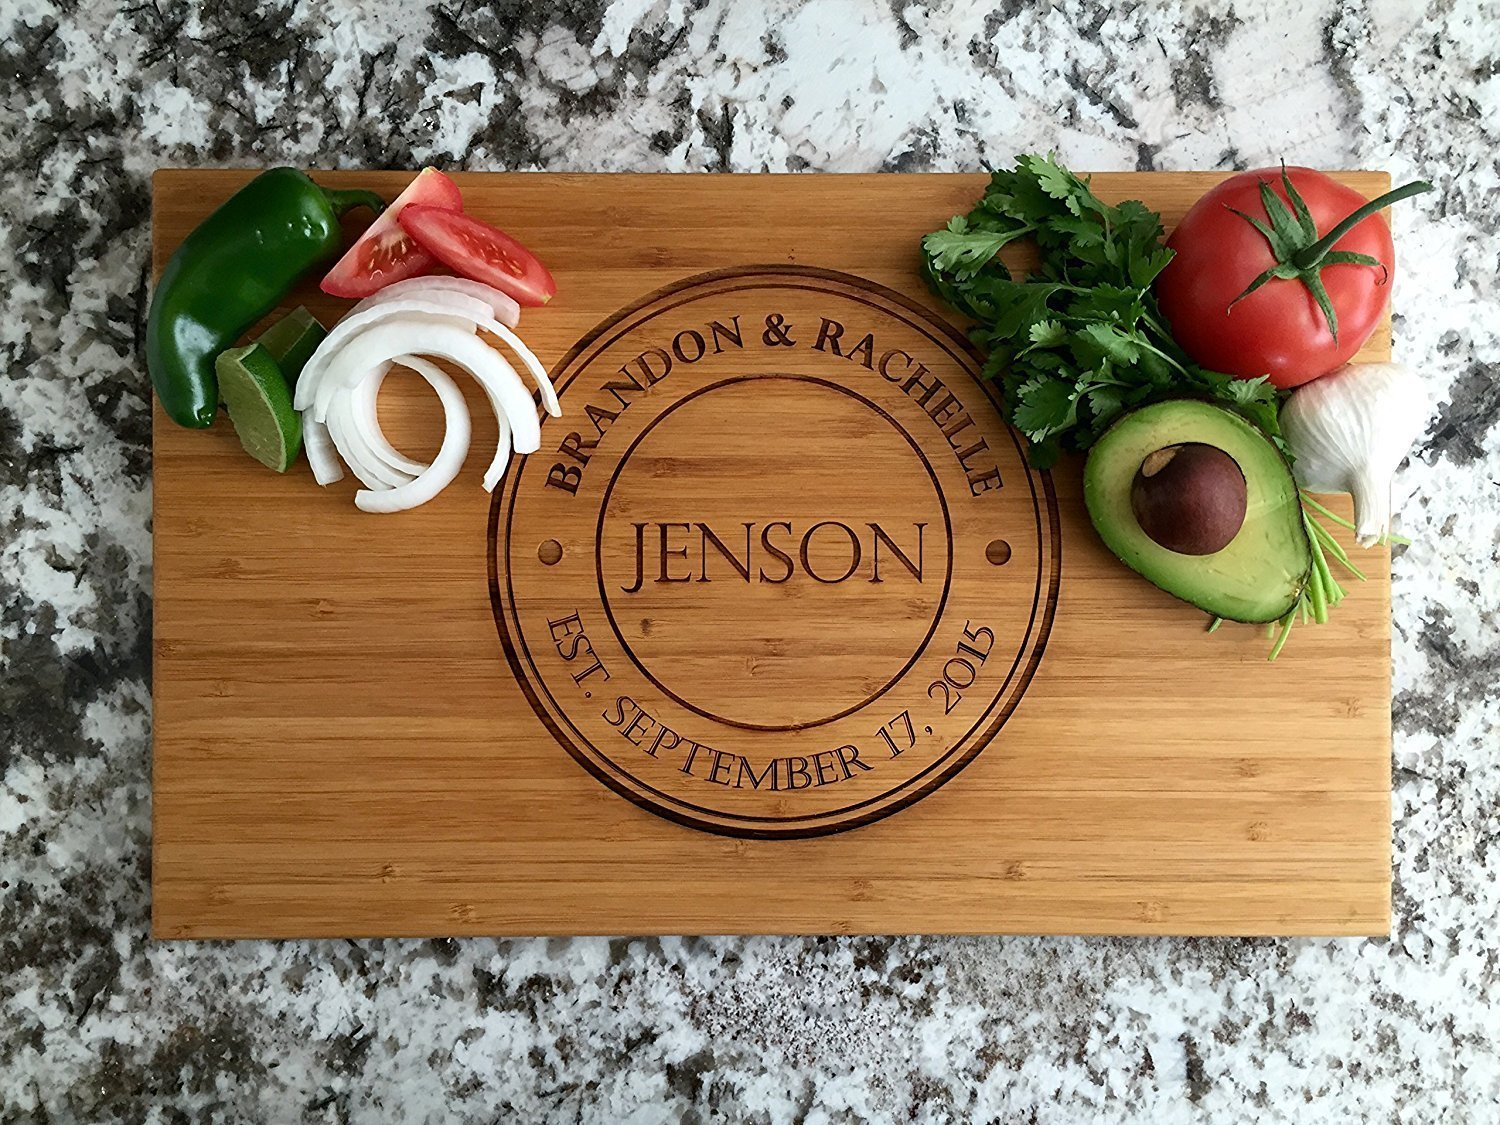 Personalized Wedding Gifts Cutting Board - Wood Cutting Boards, Also Bridal Shower and Housewarming Gifts (11 x 17 Single Tone Bamboo Rectangular, Jenson Design)